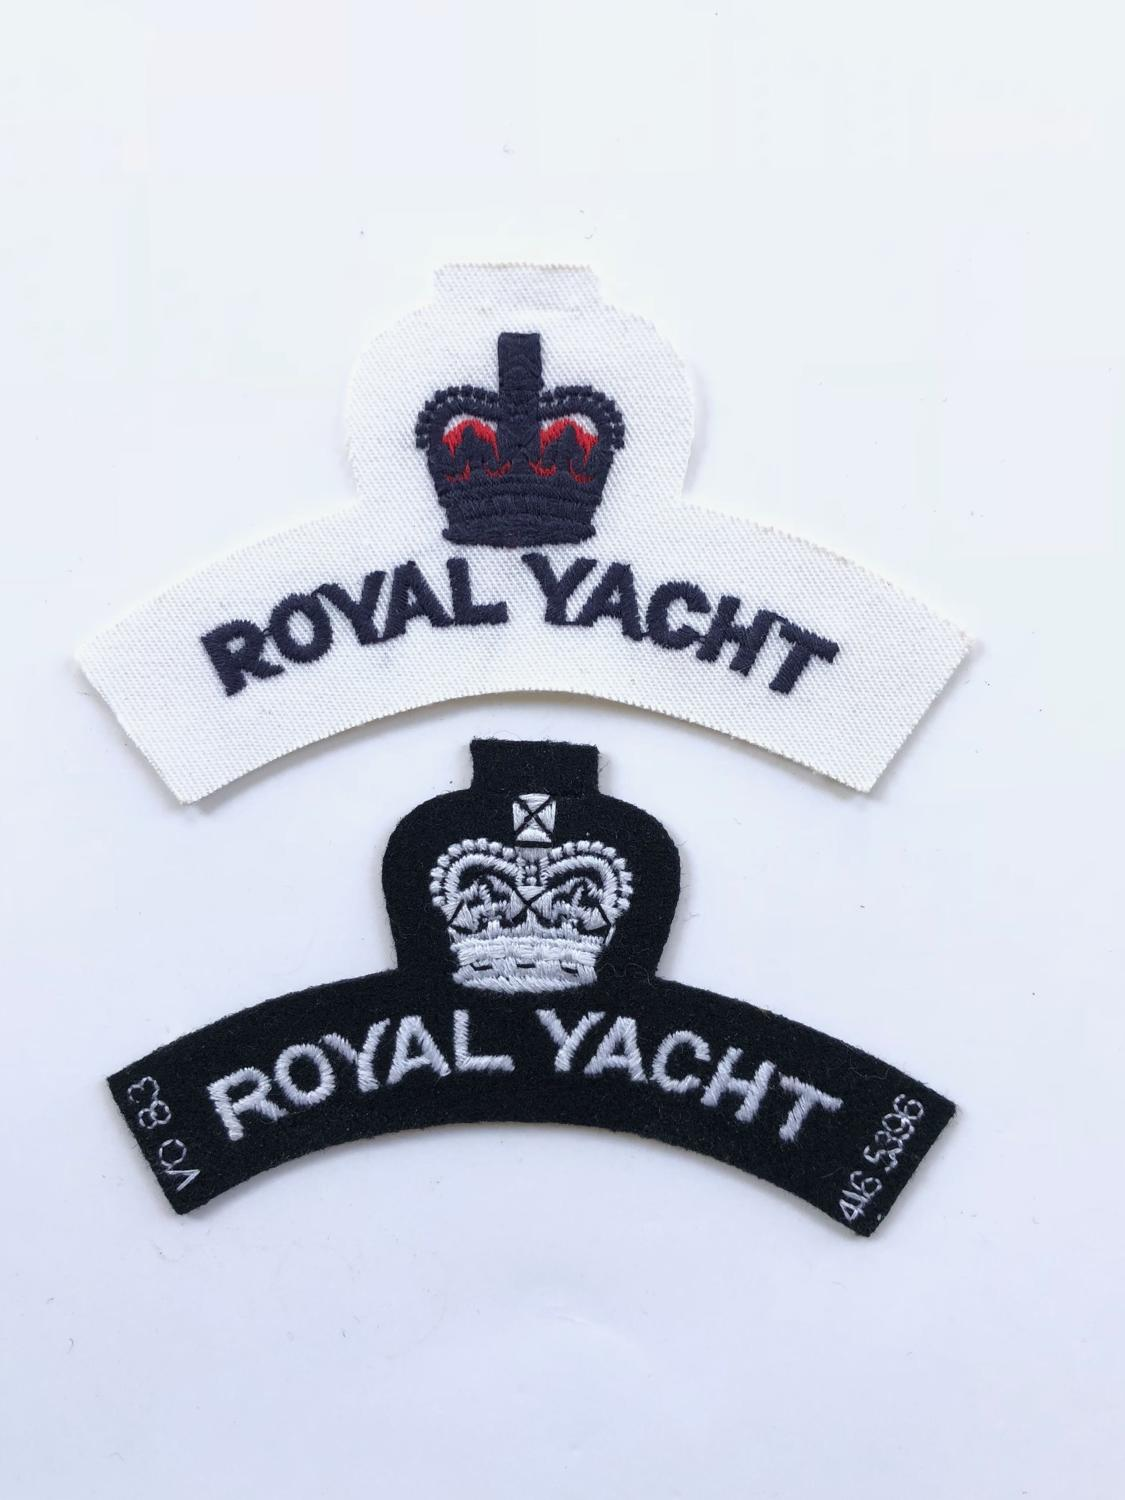 Elizabeth II Royal Navy Royal Yacht Cloth Shoulder Titles